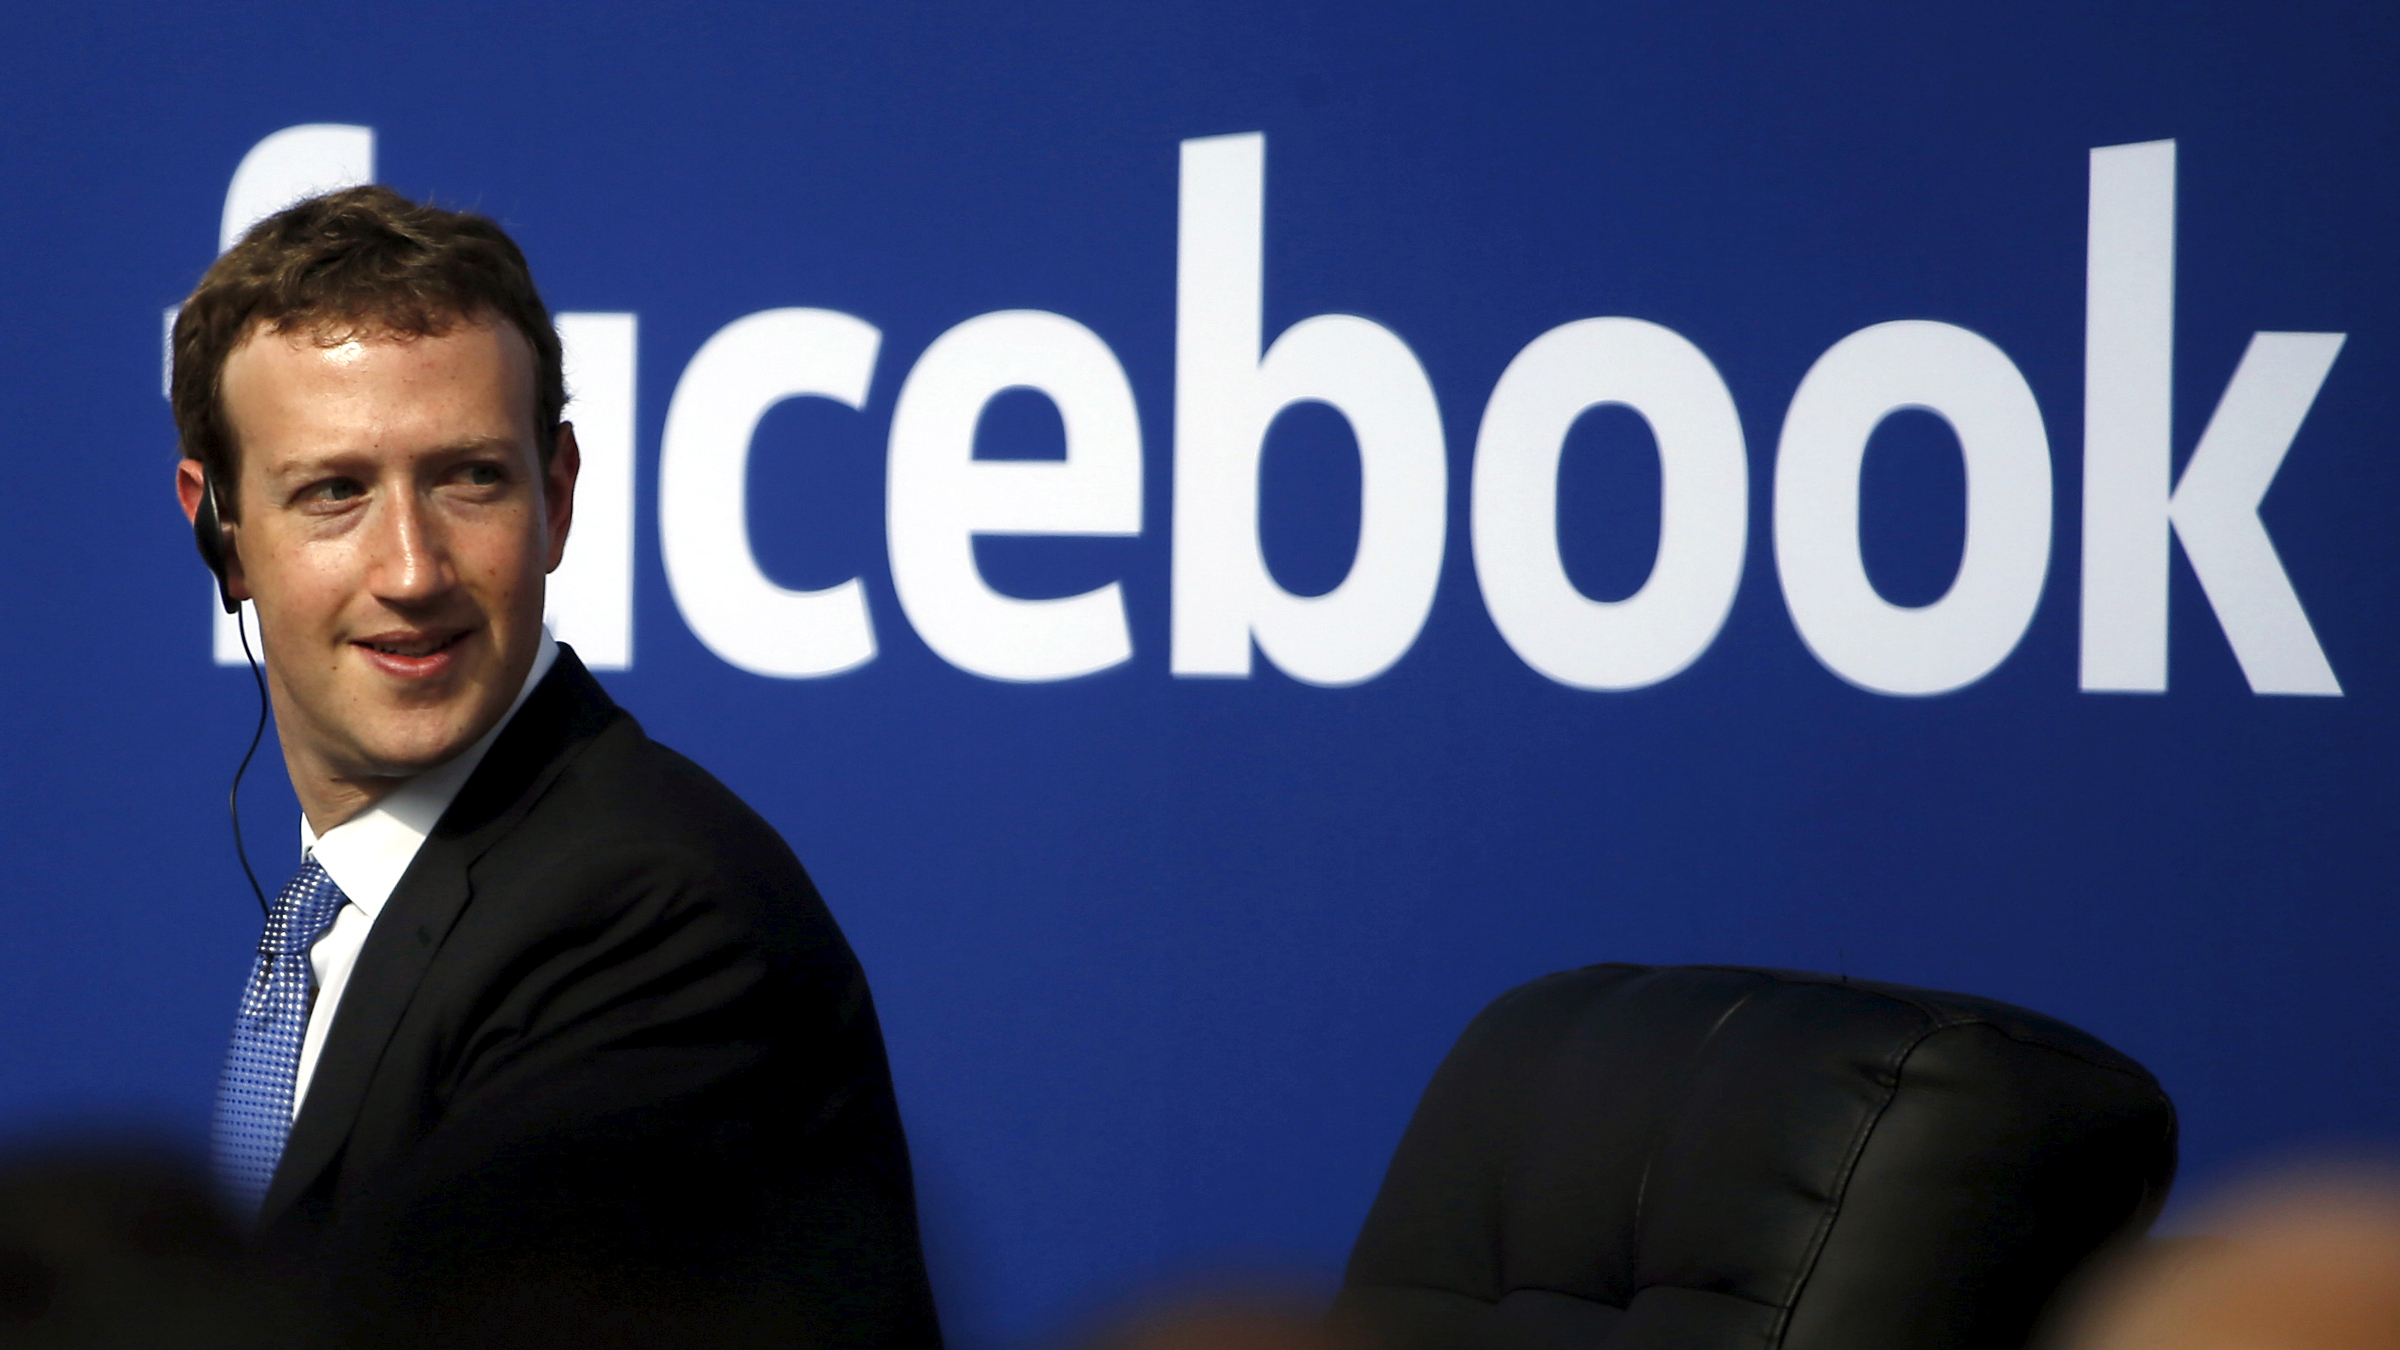 Facebook CEO Mark Zuckerberg is seen on stage during a town hall at Facebook's headquarters in Menlo Park, California September 27, 2015. Picture taken February 27, 2015.